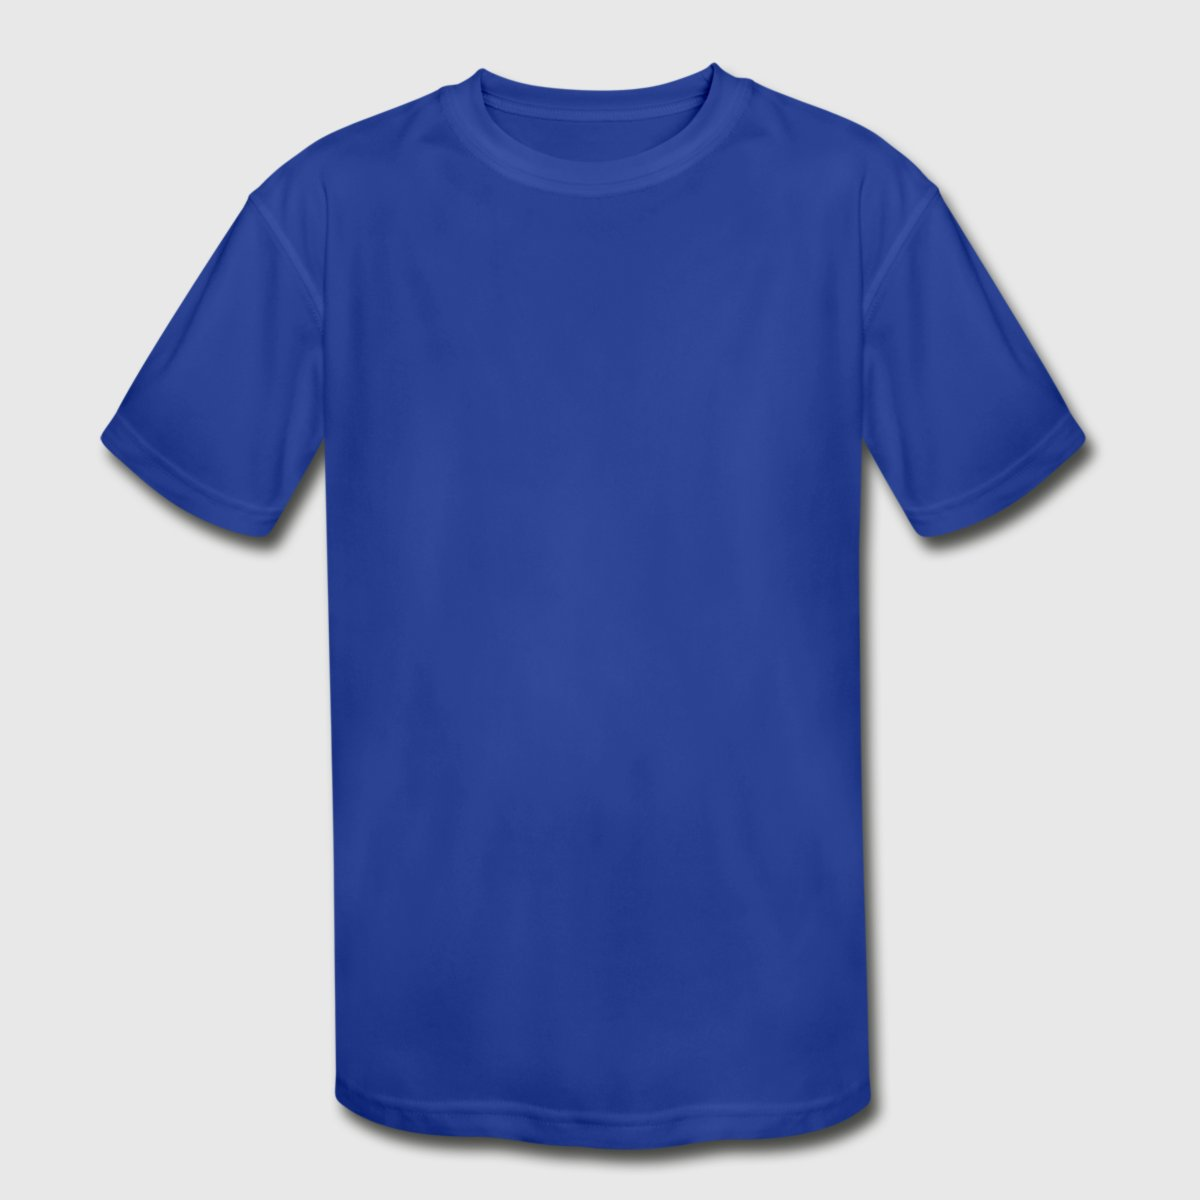 Kids' Moisture Wicking Performance T-Shirt - Front